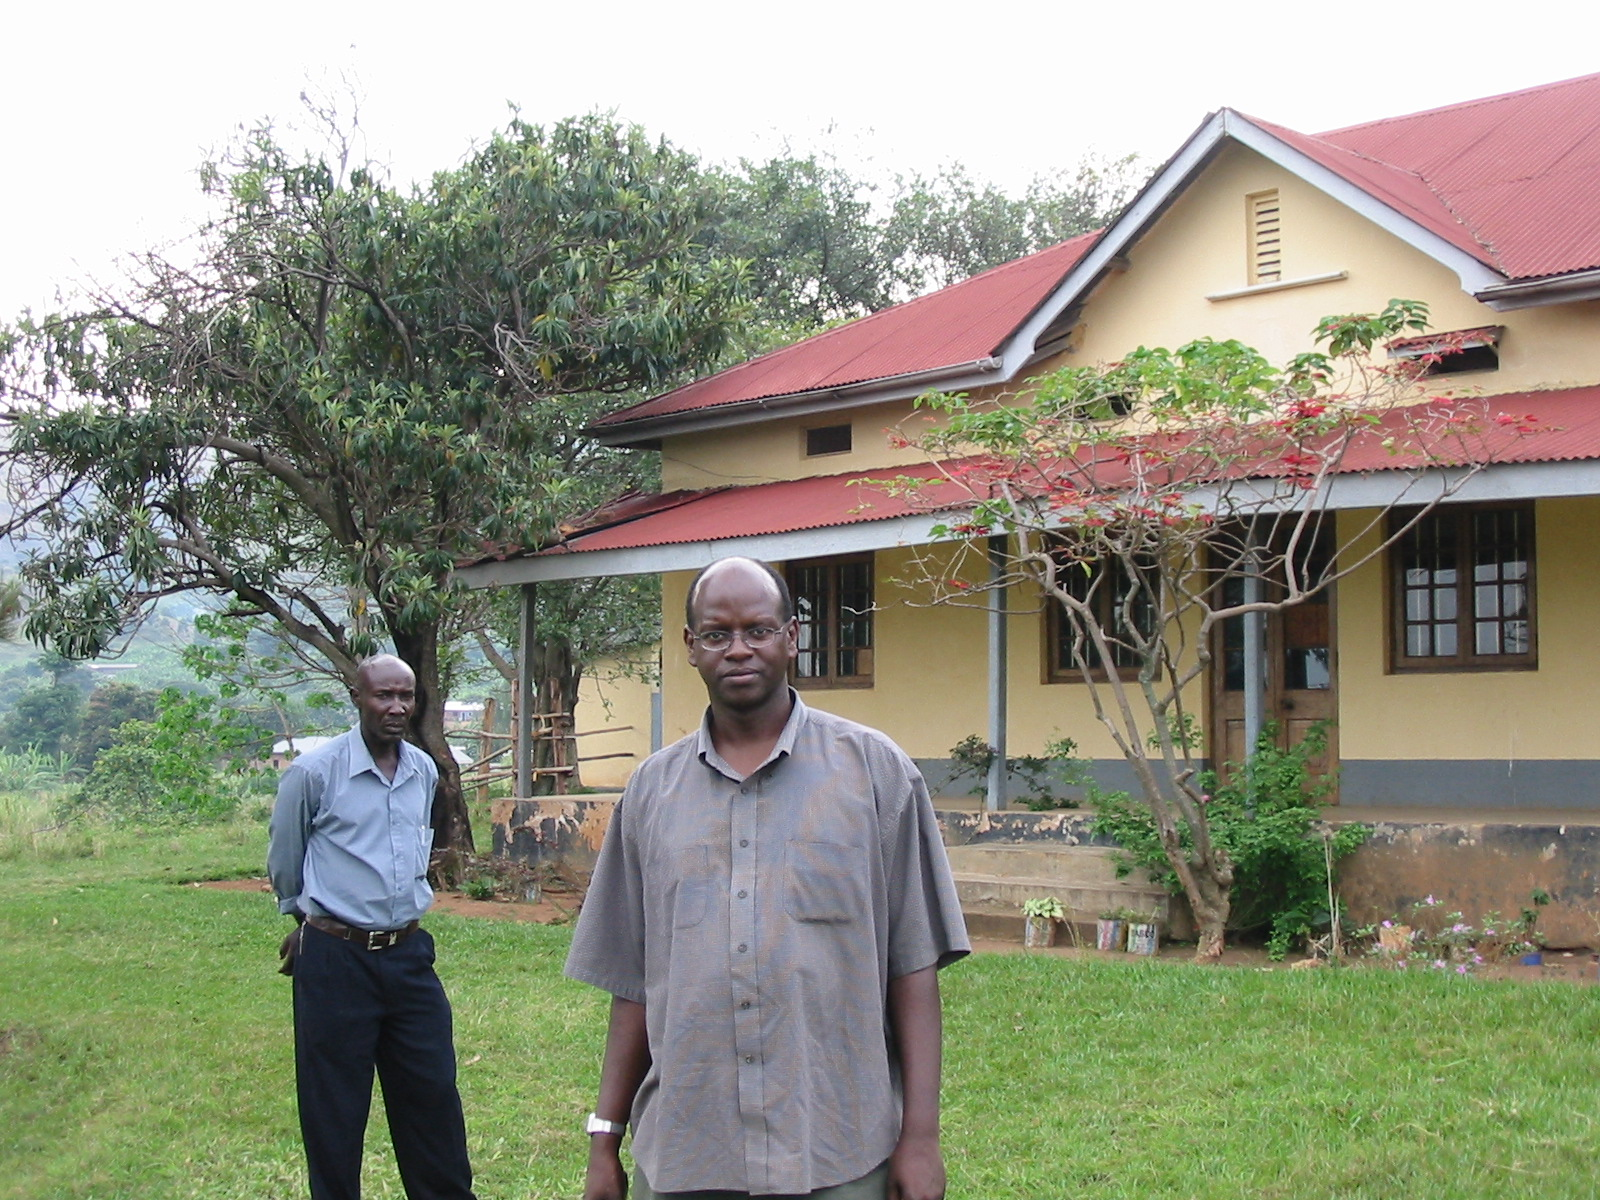 Duncan Laki outside the chief's house in Ibanda (Andrew Rice)